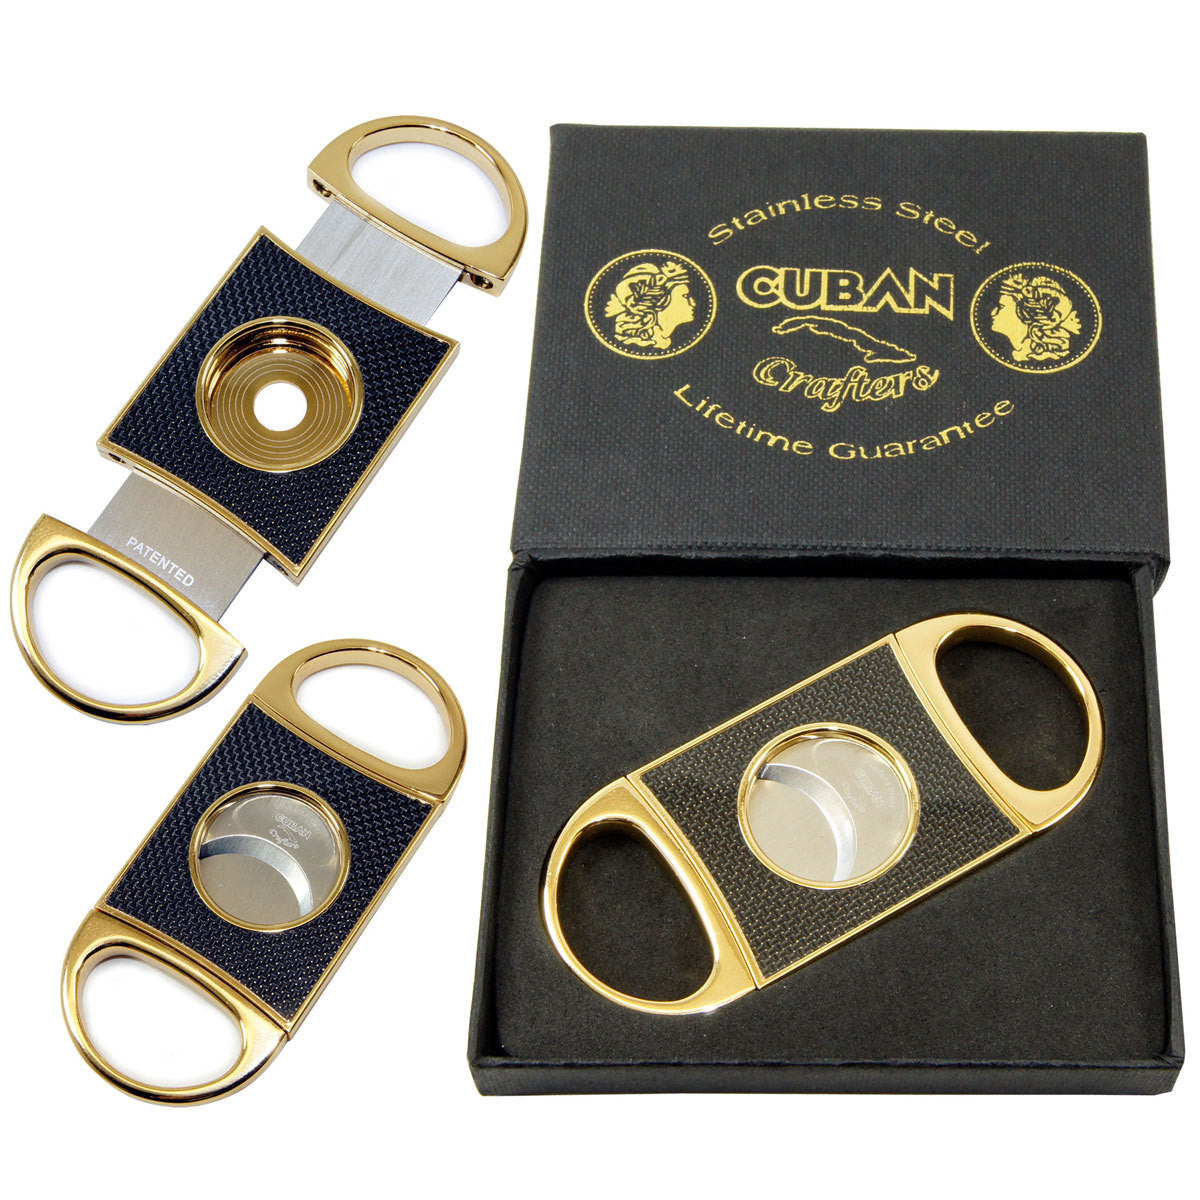 Gold Cigar Cutter Cuban Crafters Carbon Fiber Perfect Cutters - Humidors Wholesaler